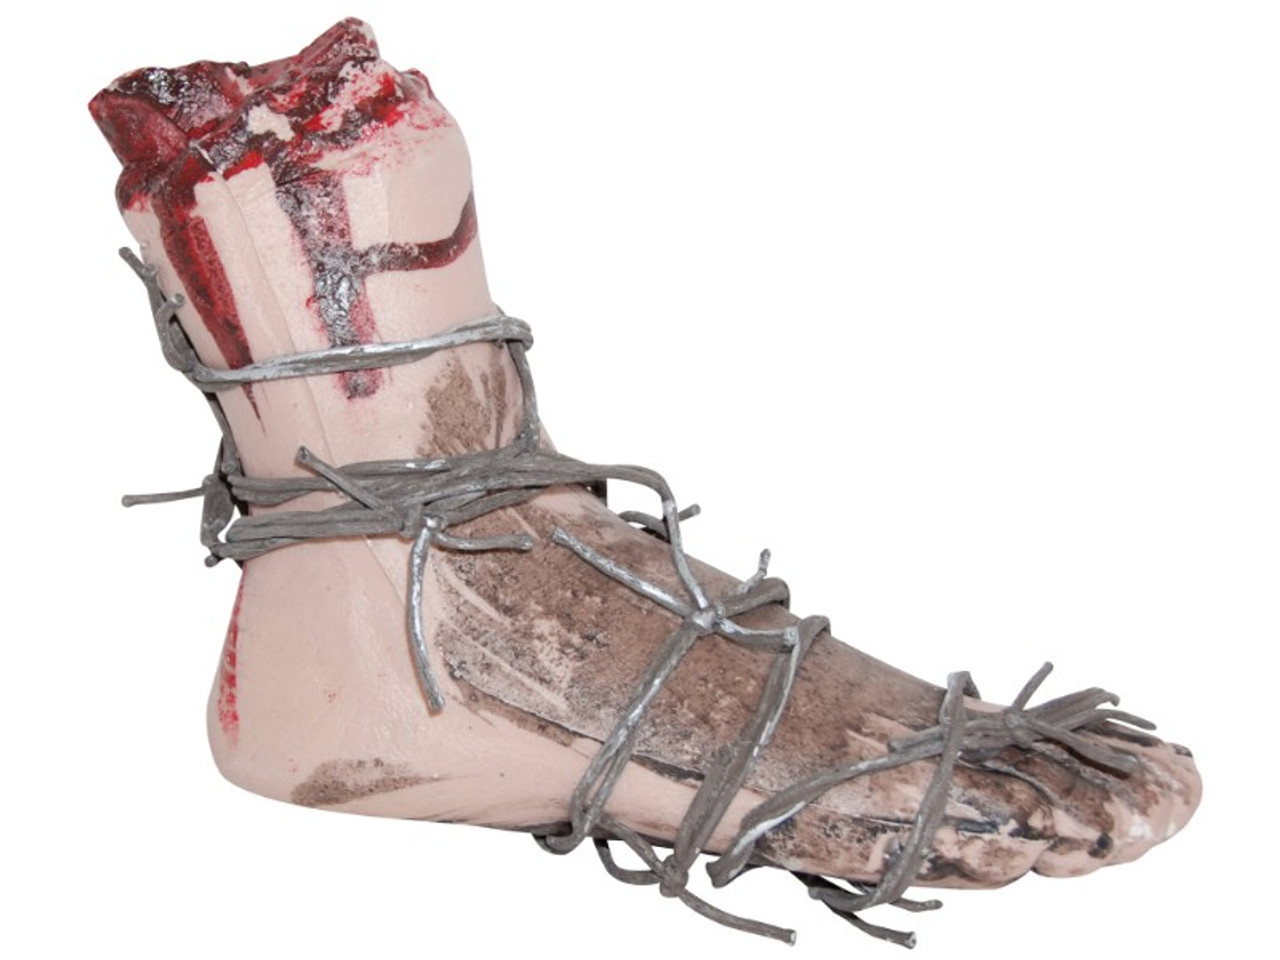 Bloody Barbed Wire Severed Foot Prop | Shockingly Realistic!